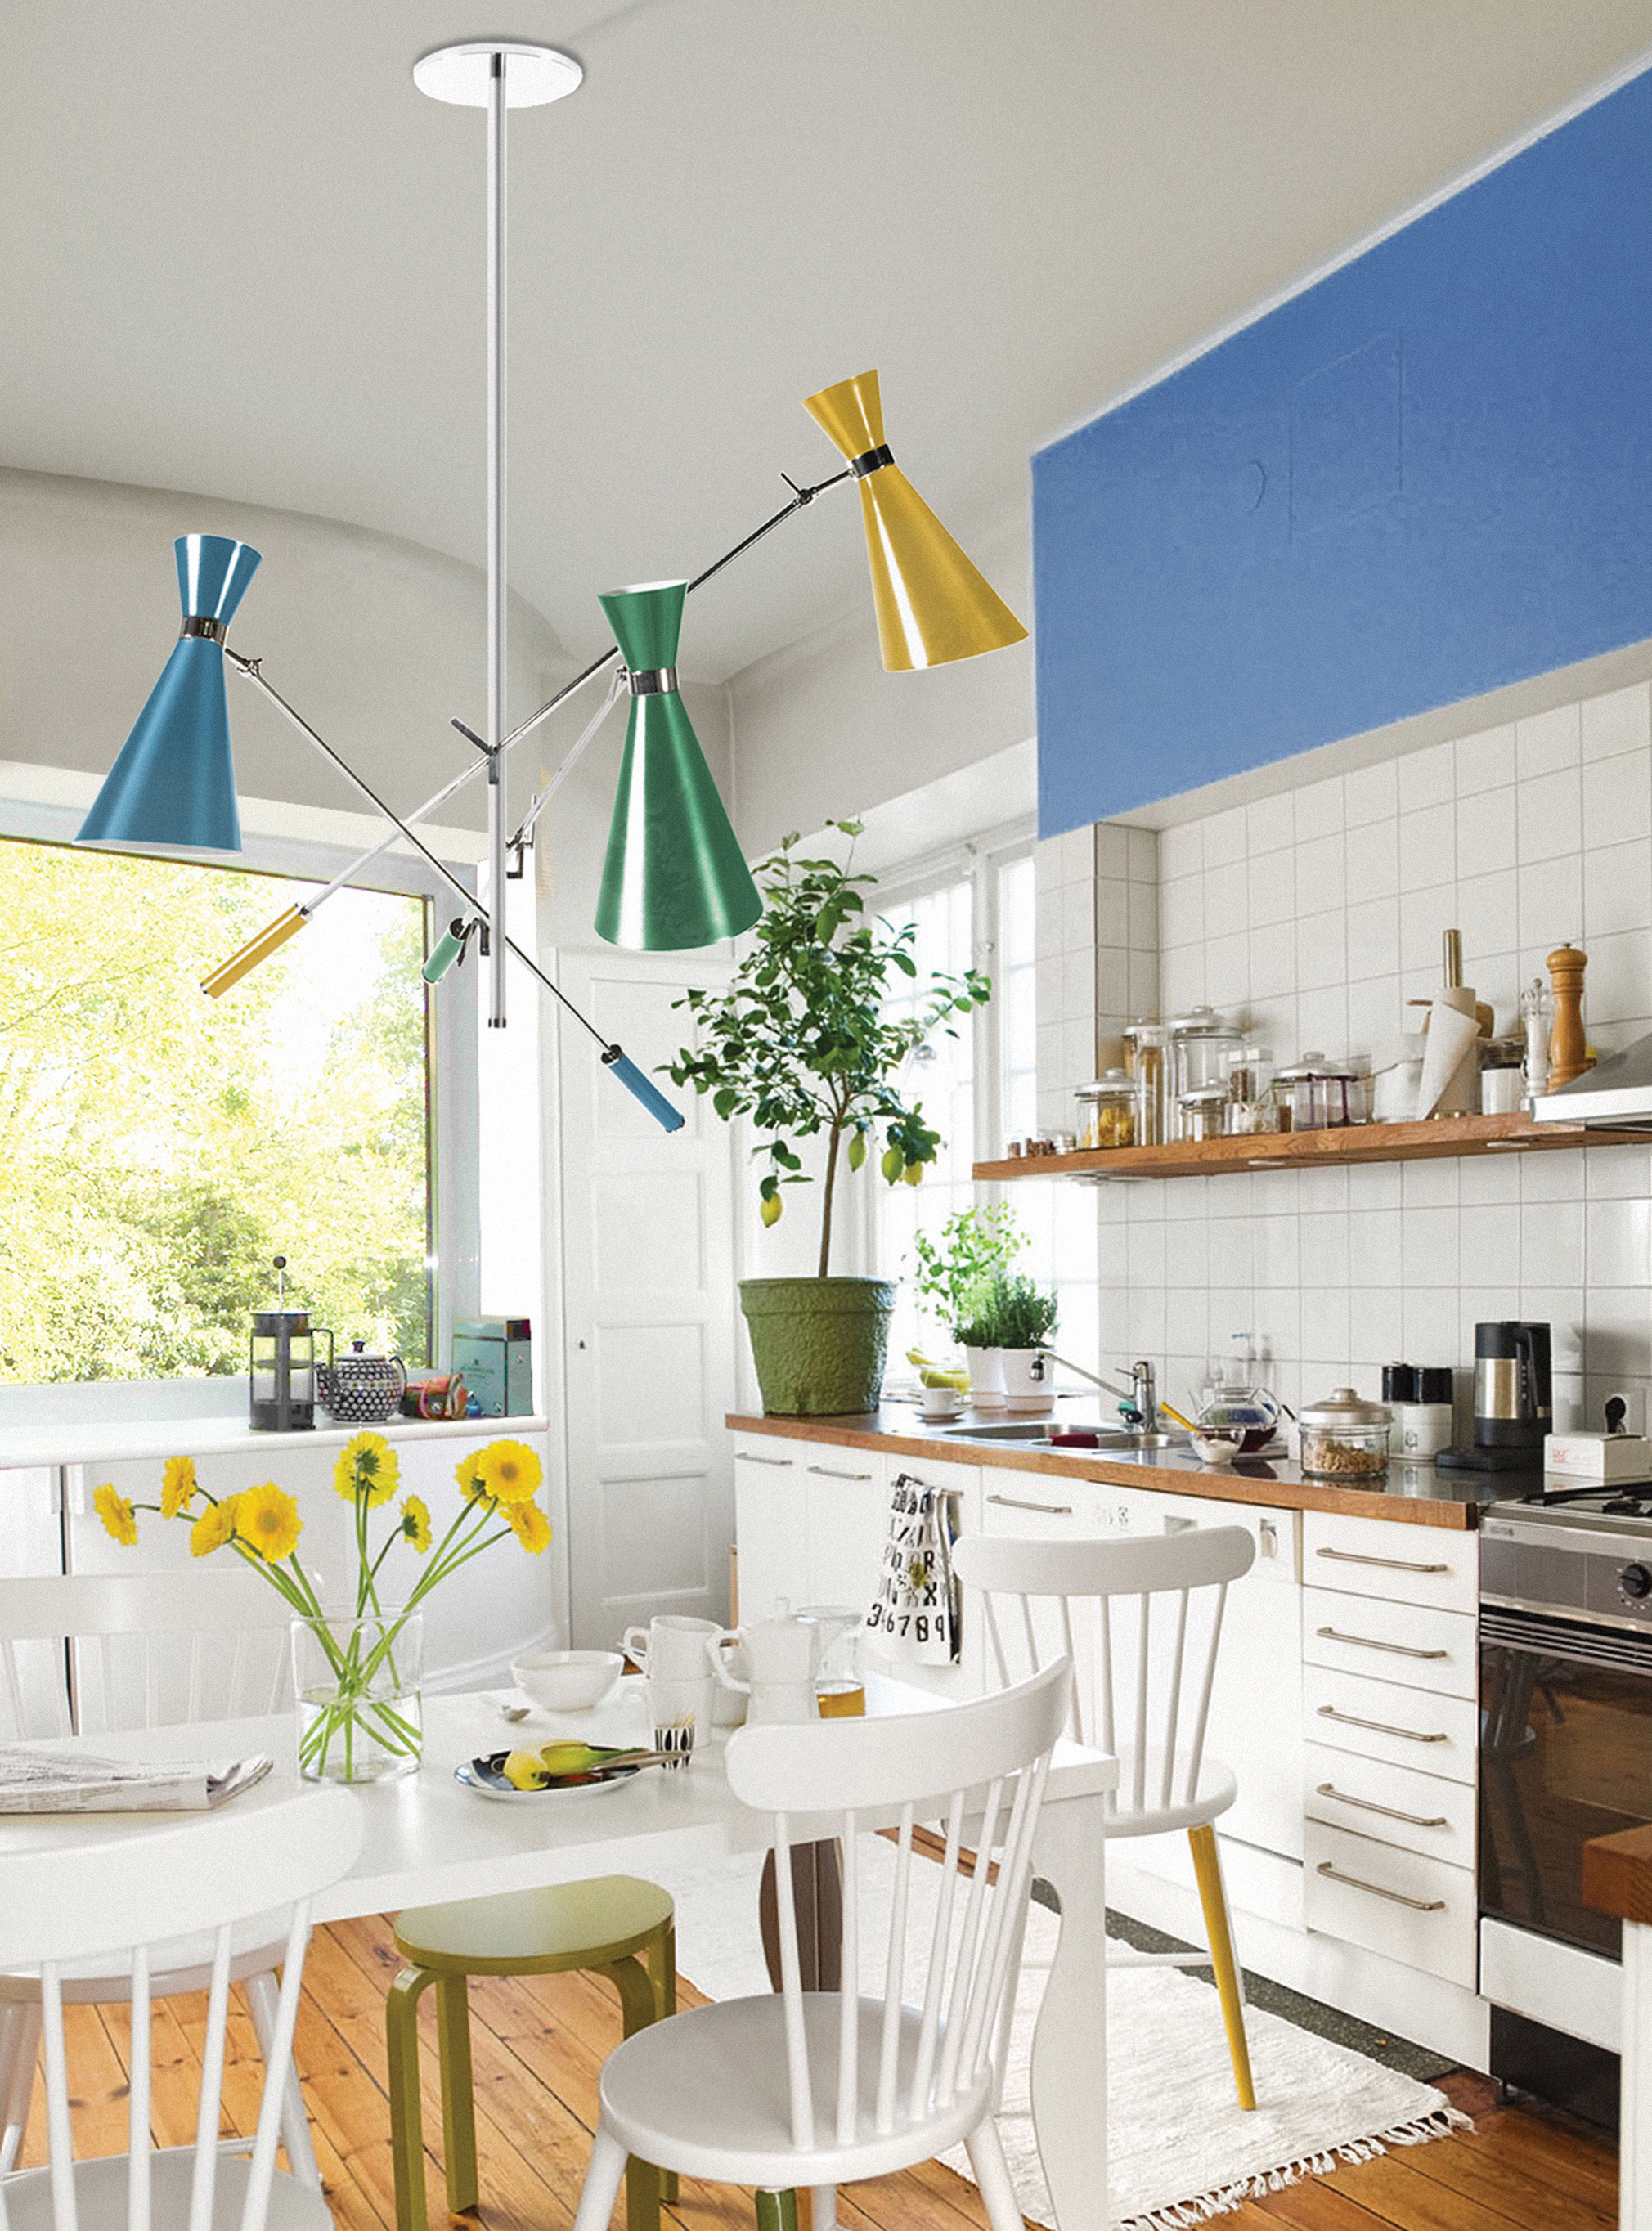 Here are the Best Lighting Designs for Your Kitchen Decor (2) lighting design Here Are the Best Lighting Designs for Your Kitchen Decor Here are the Best Lighting Designs for Your Kitchen Decor 4